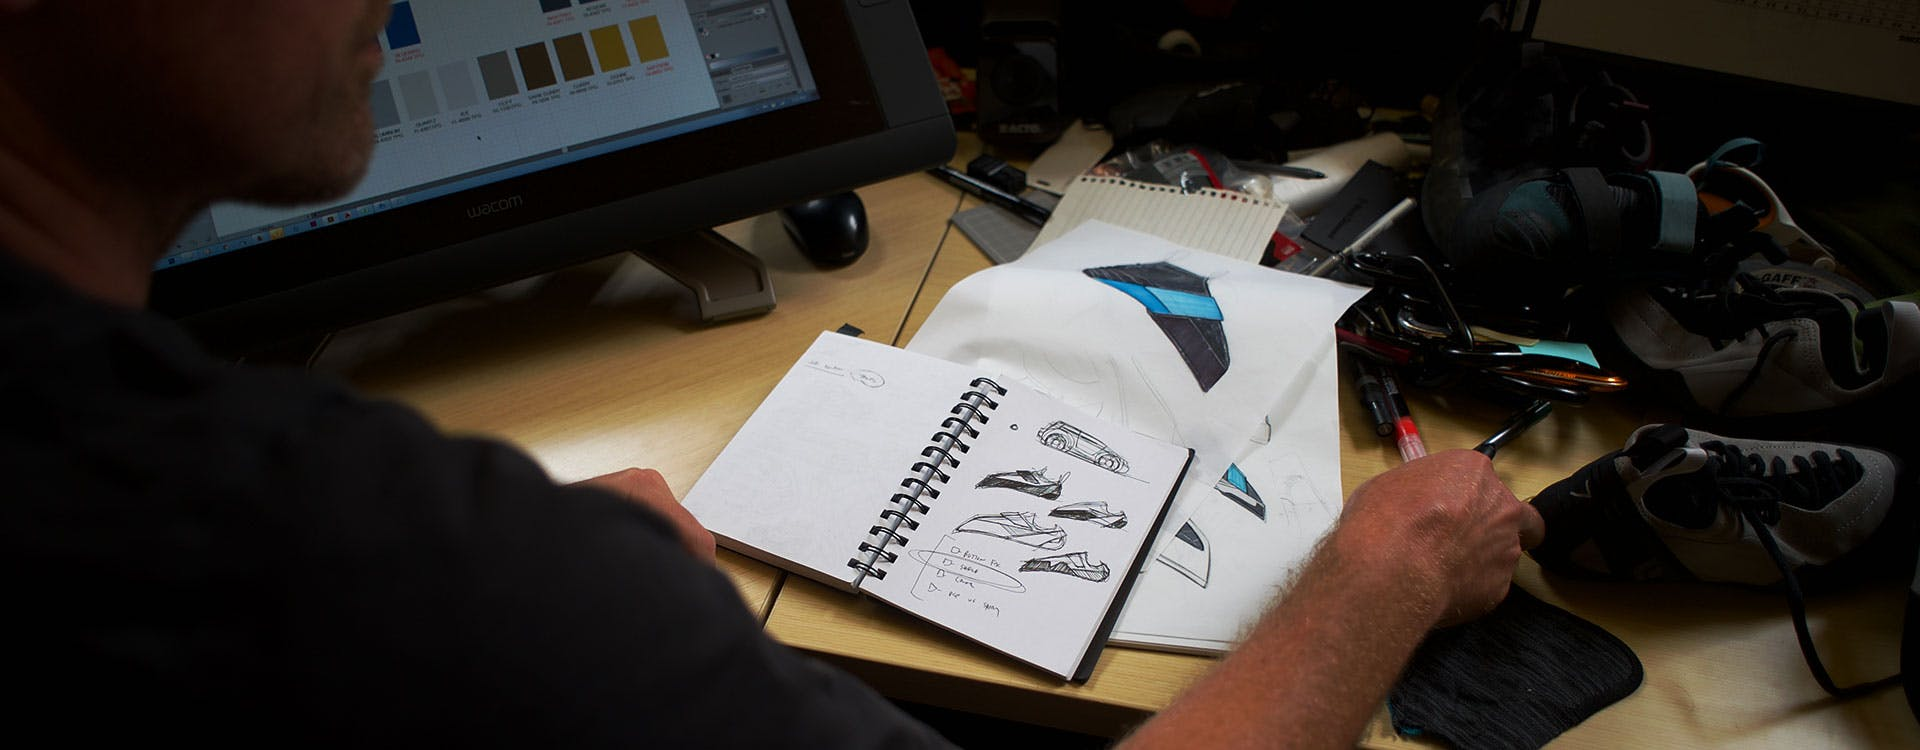 designer working with sketches and prototypes of BD climbing shoes